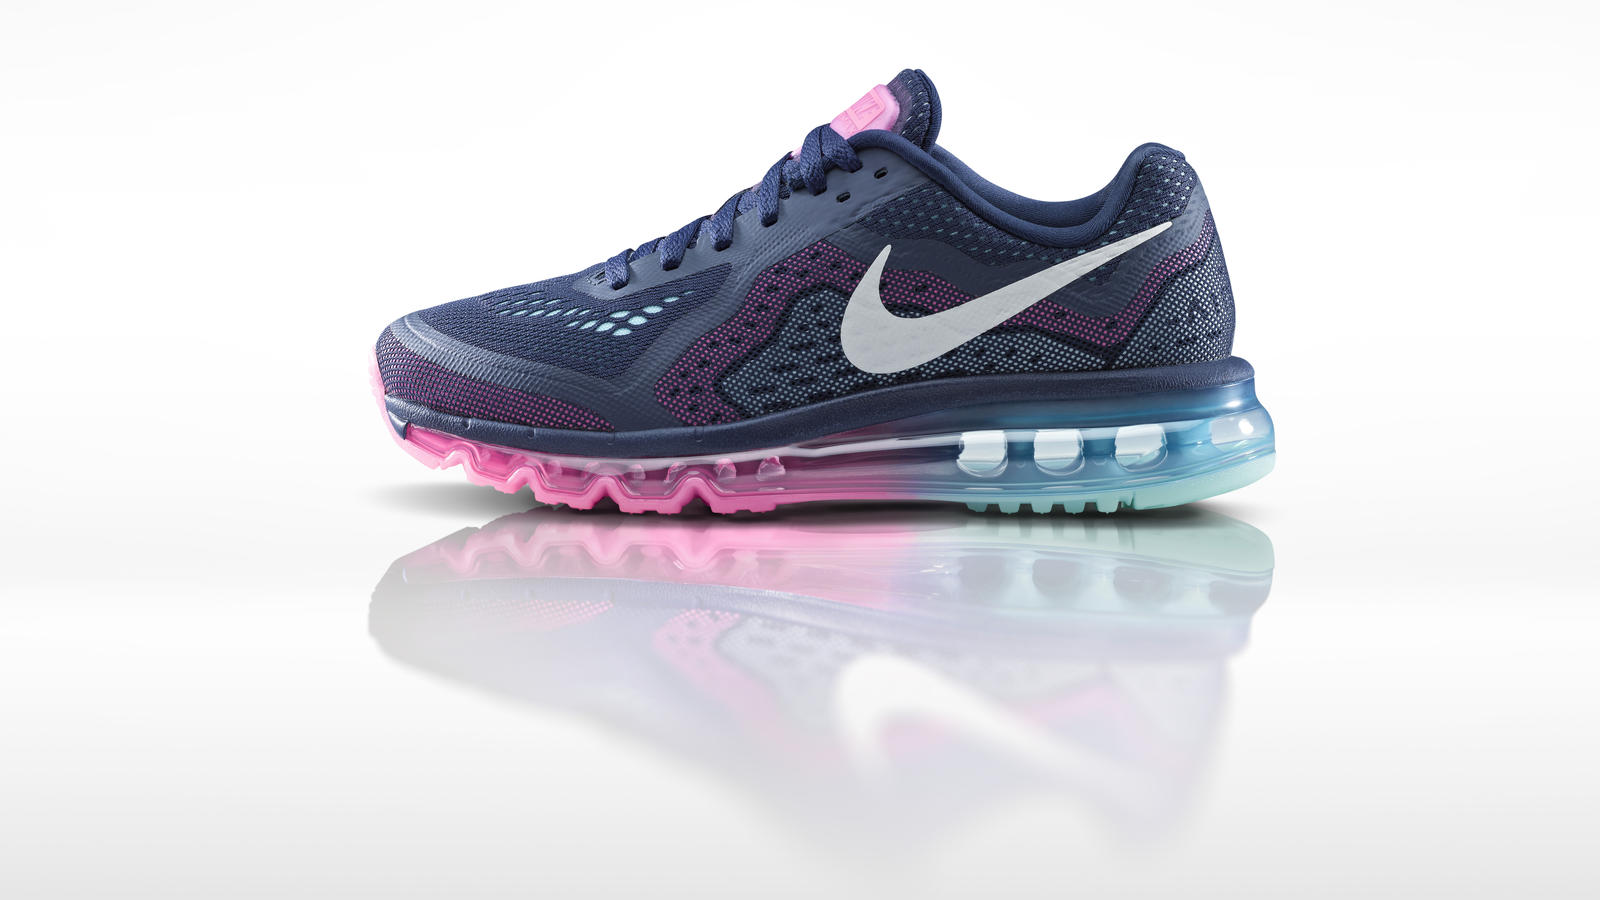 nike flyknit air max 2014 uomo running scarpe grey-purple